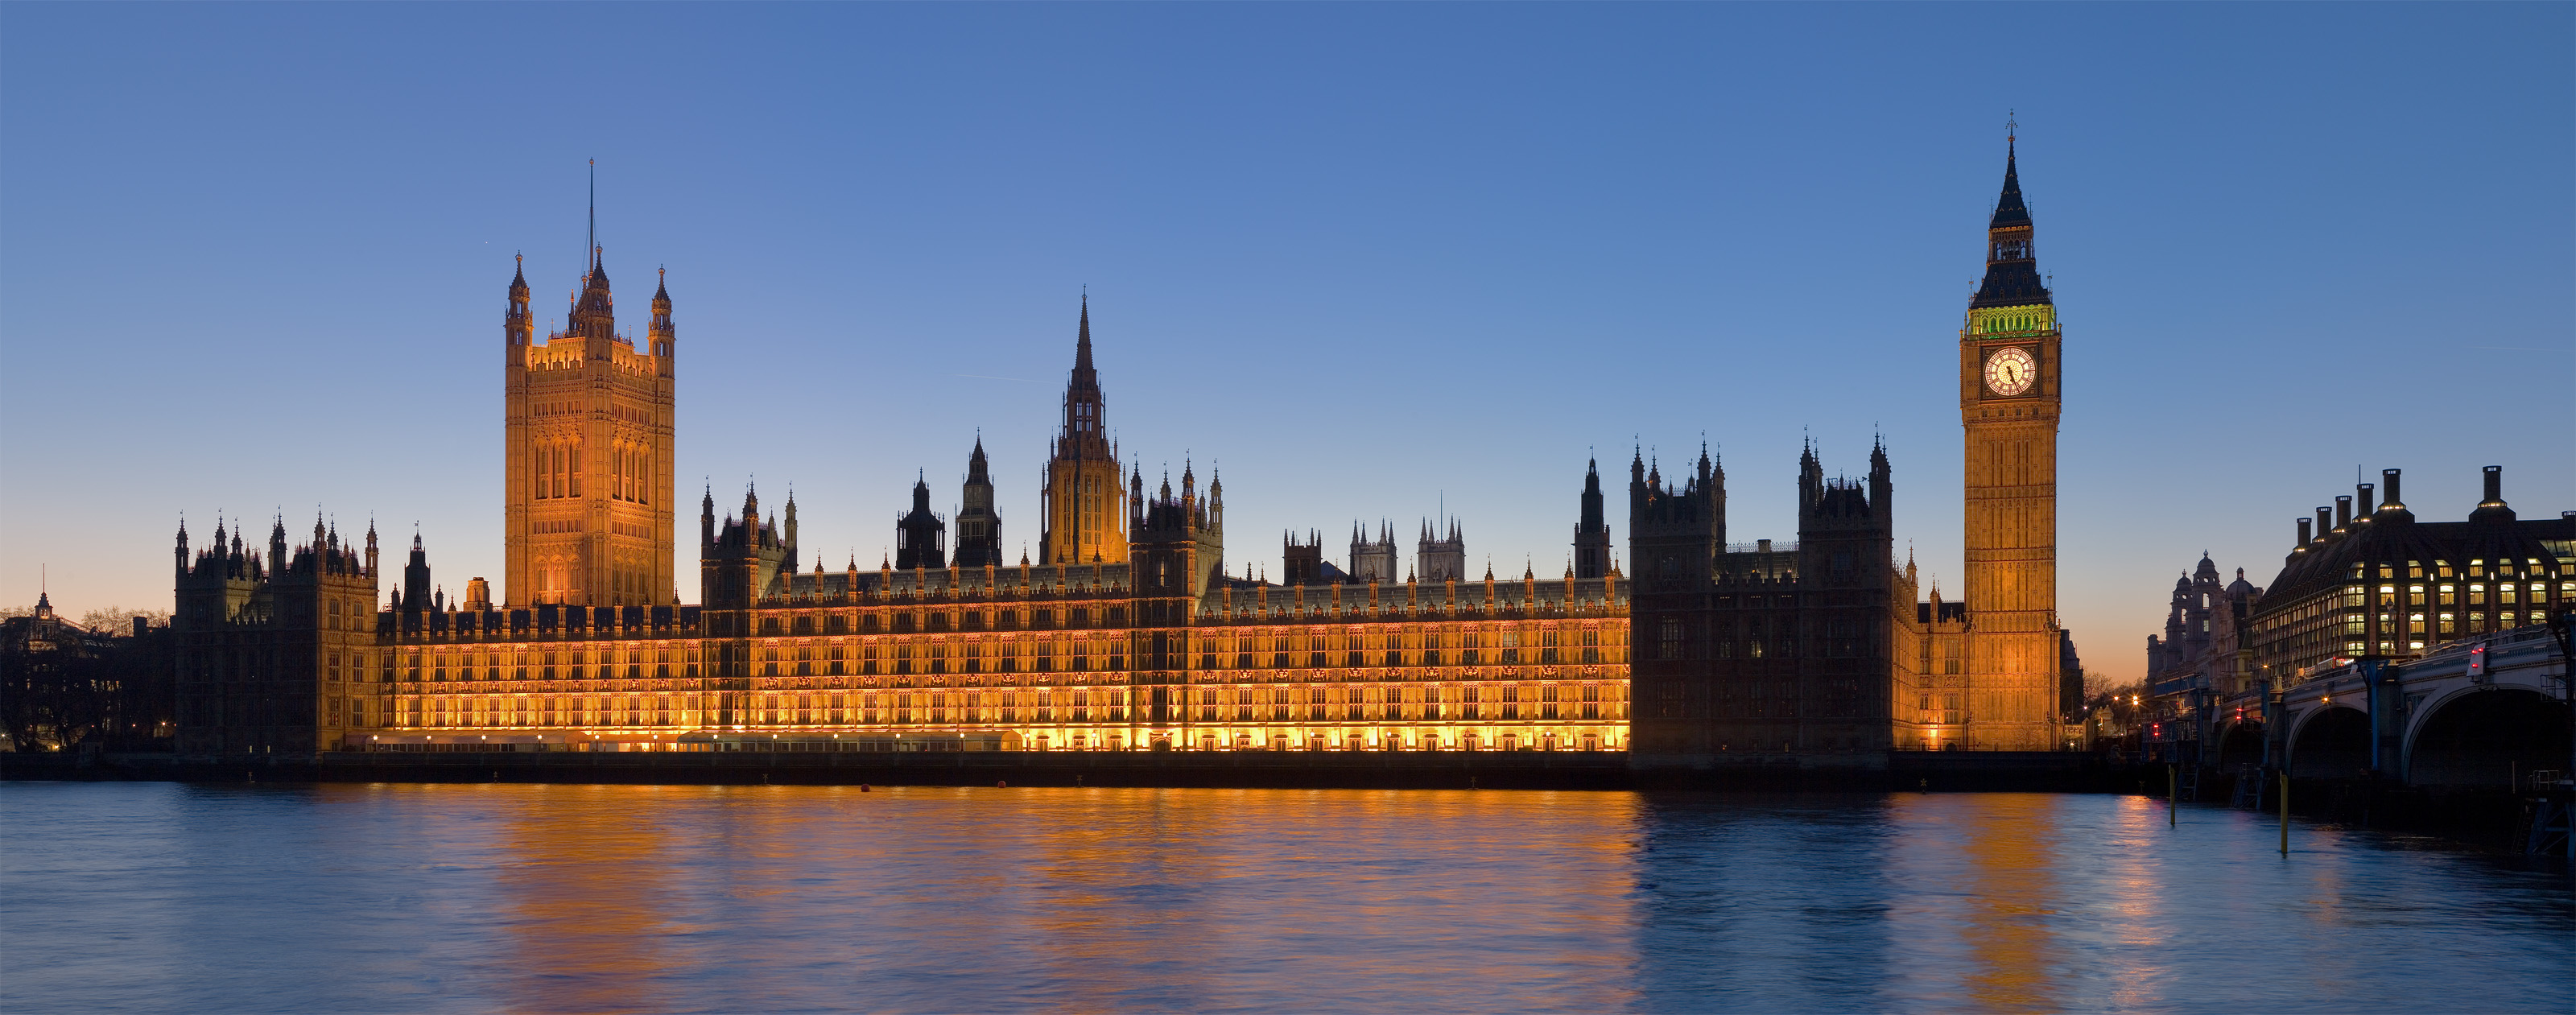 Press Statement: Parliamentary Committee Savages The Investigatory Powers Bill